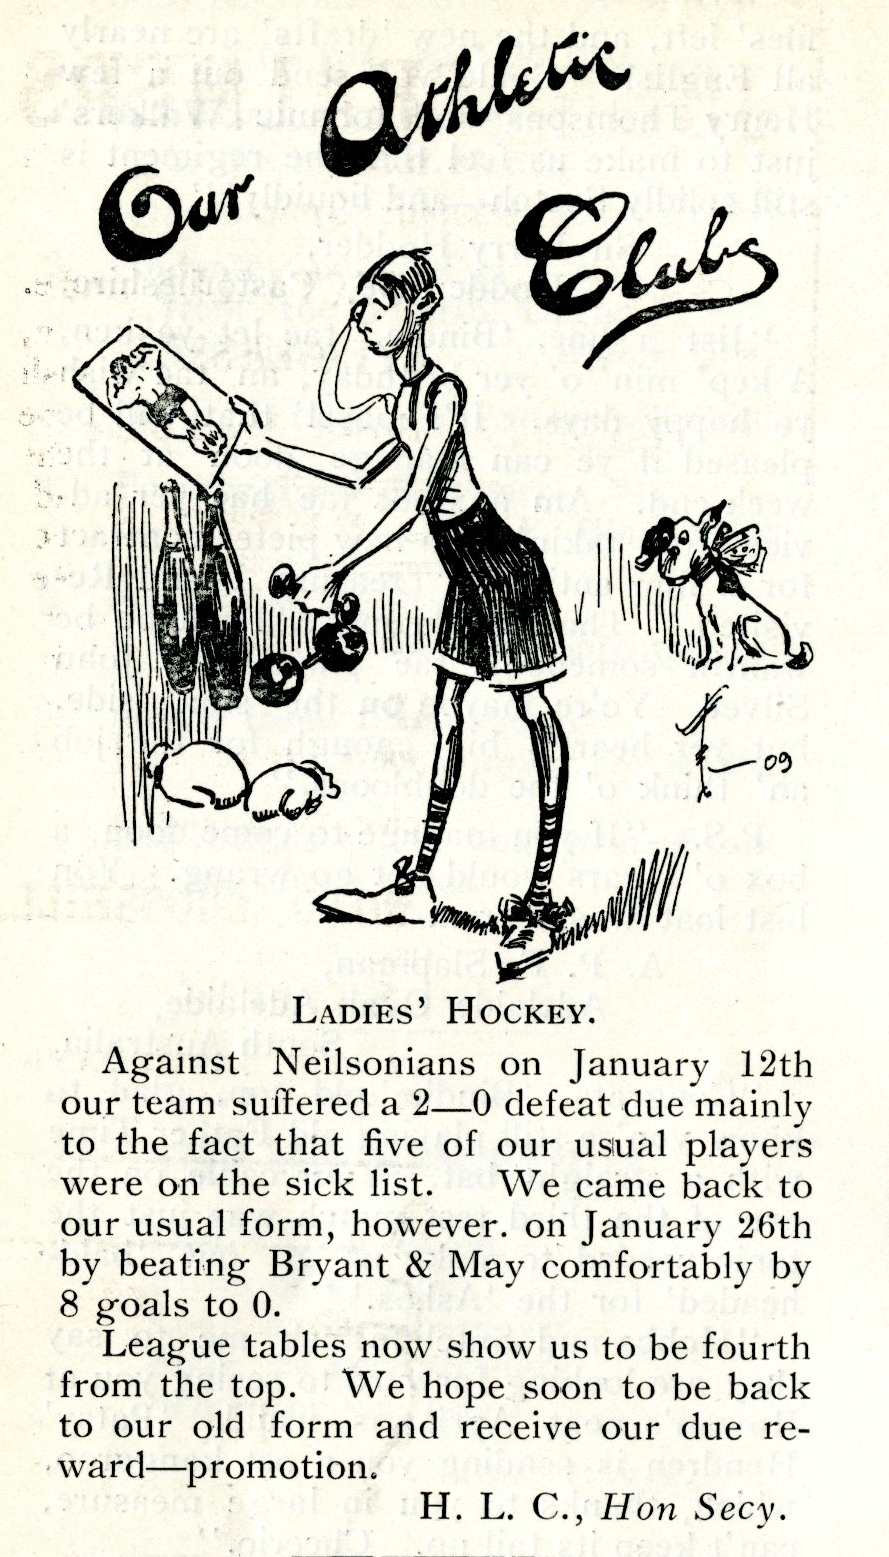 Section of magazine about the Ladies Hockey team results